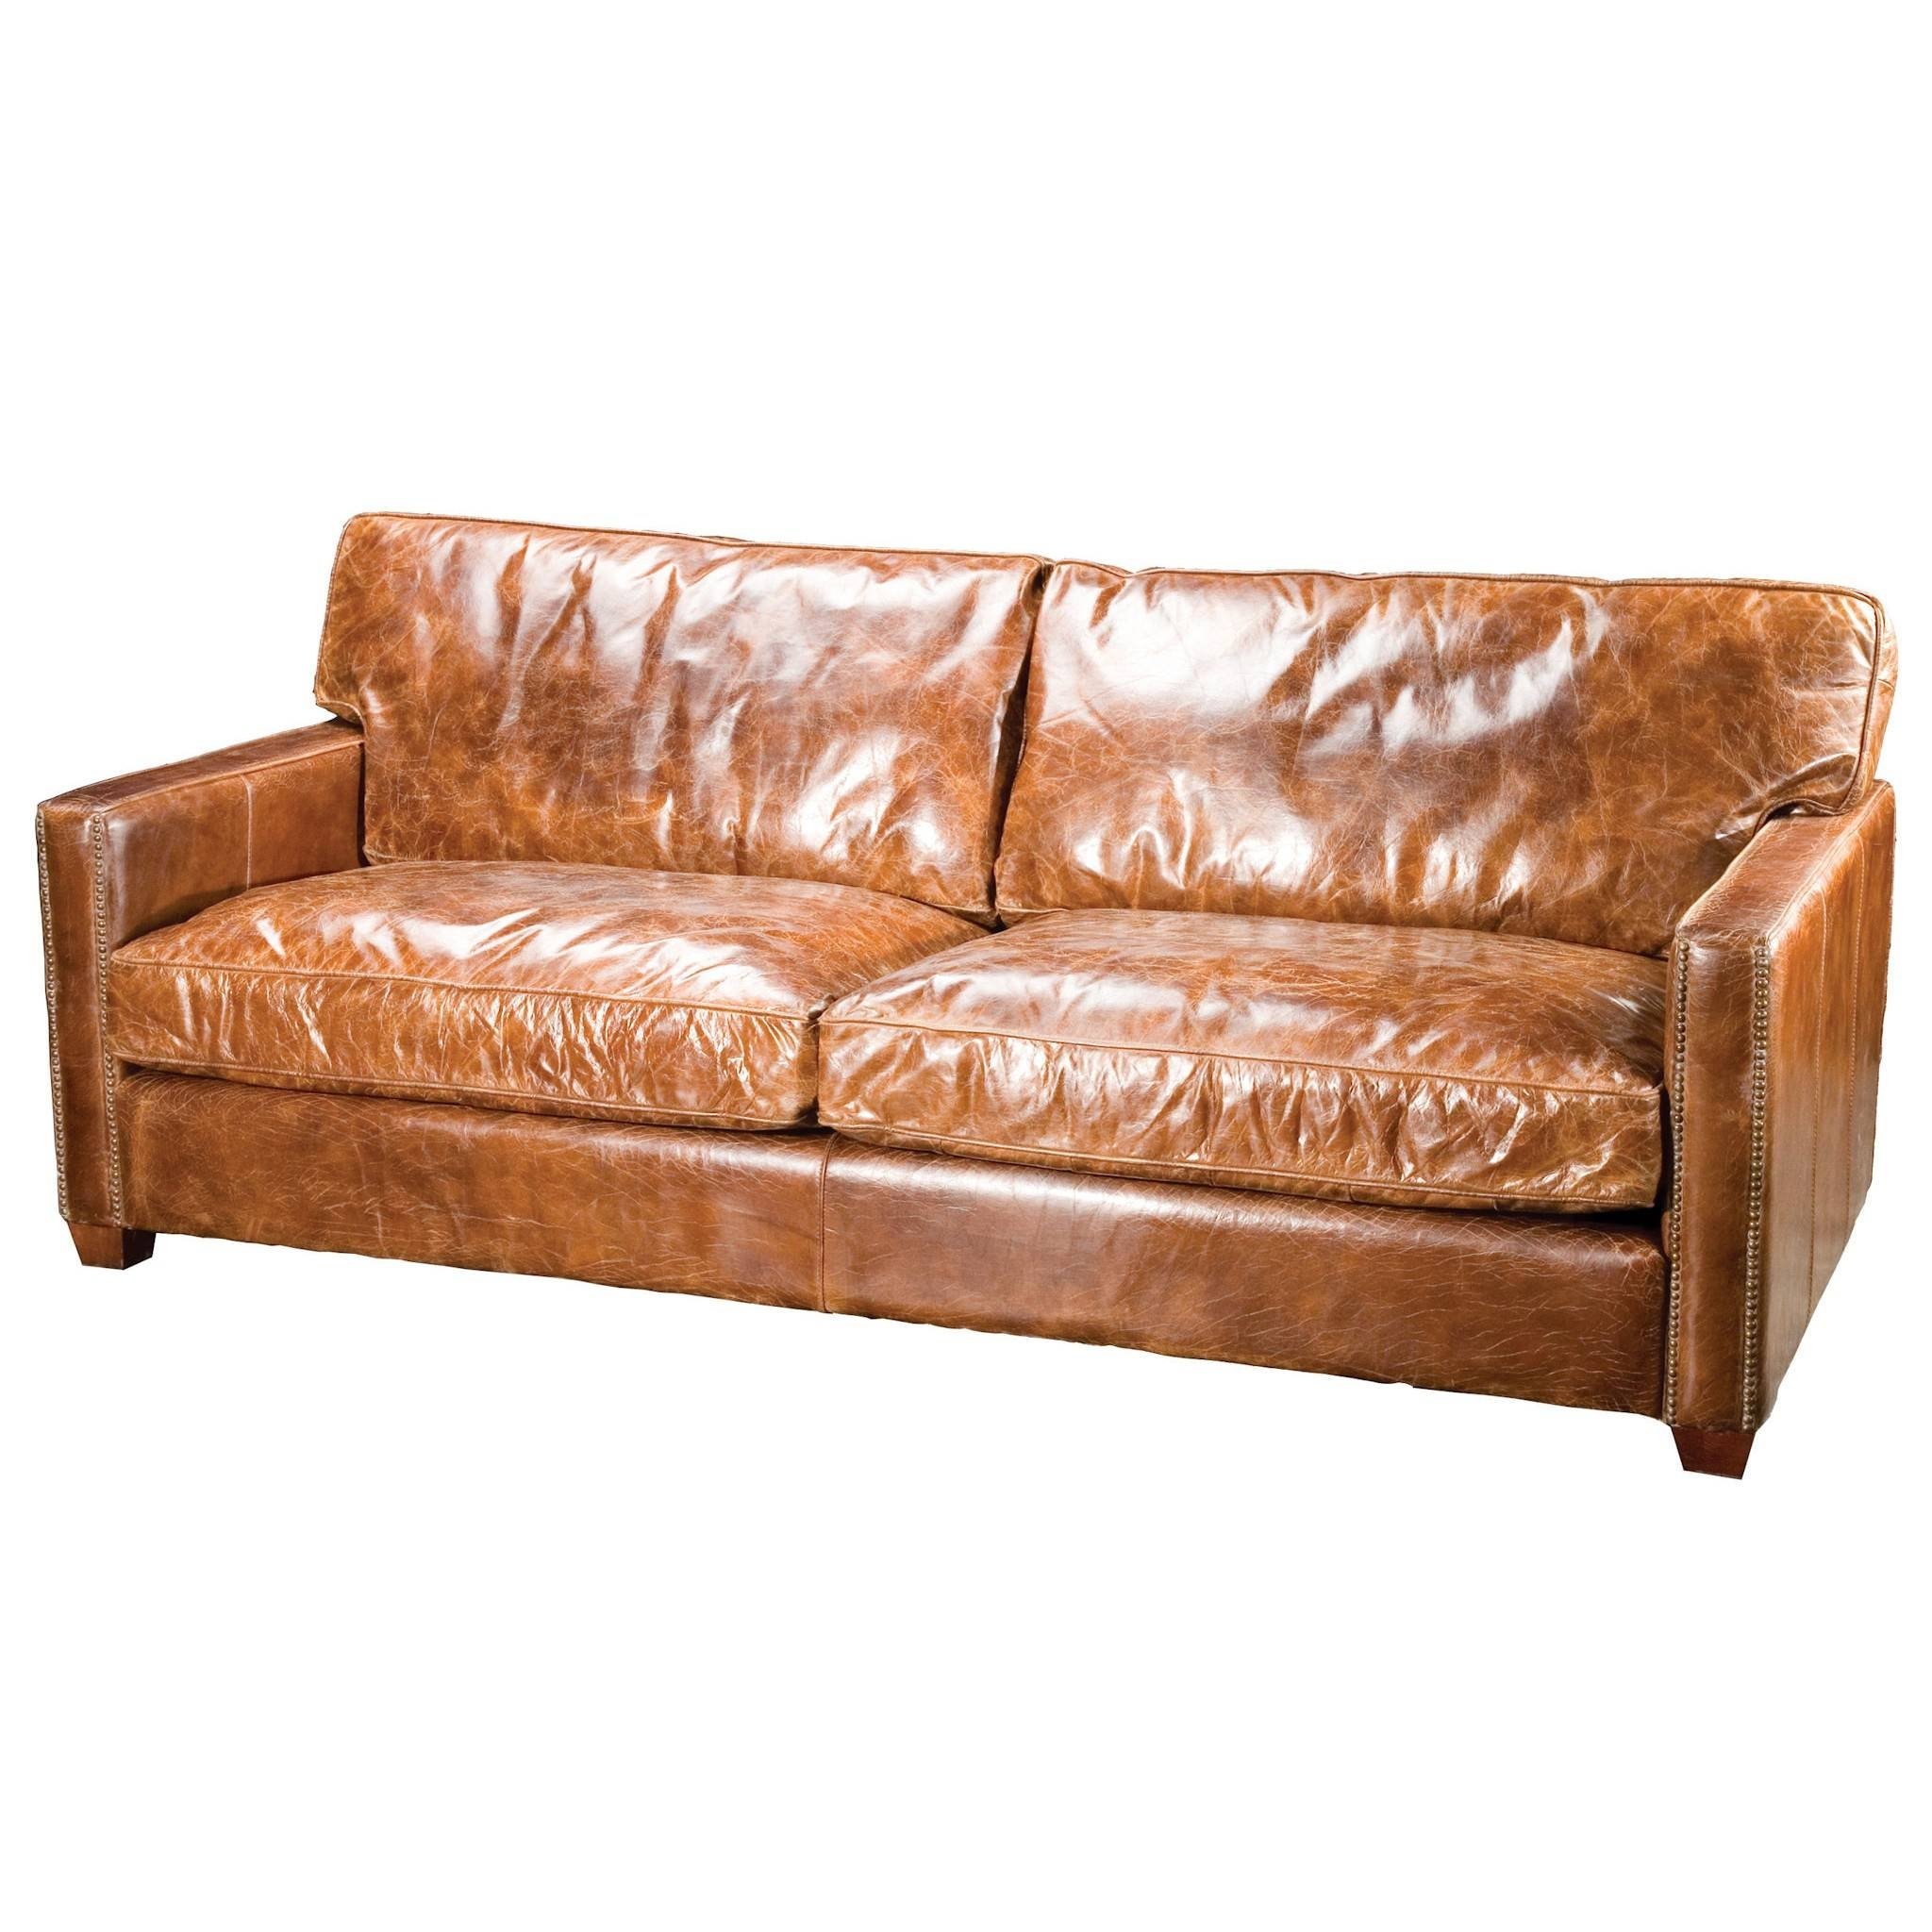 Sofas Center : Breathtaking Light Brownher Sofa Image Ideas Best inside Light Tan Leather Sofas (Image 26 of 30)